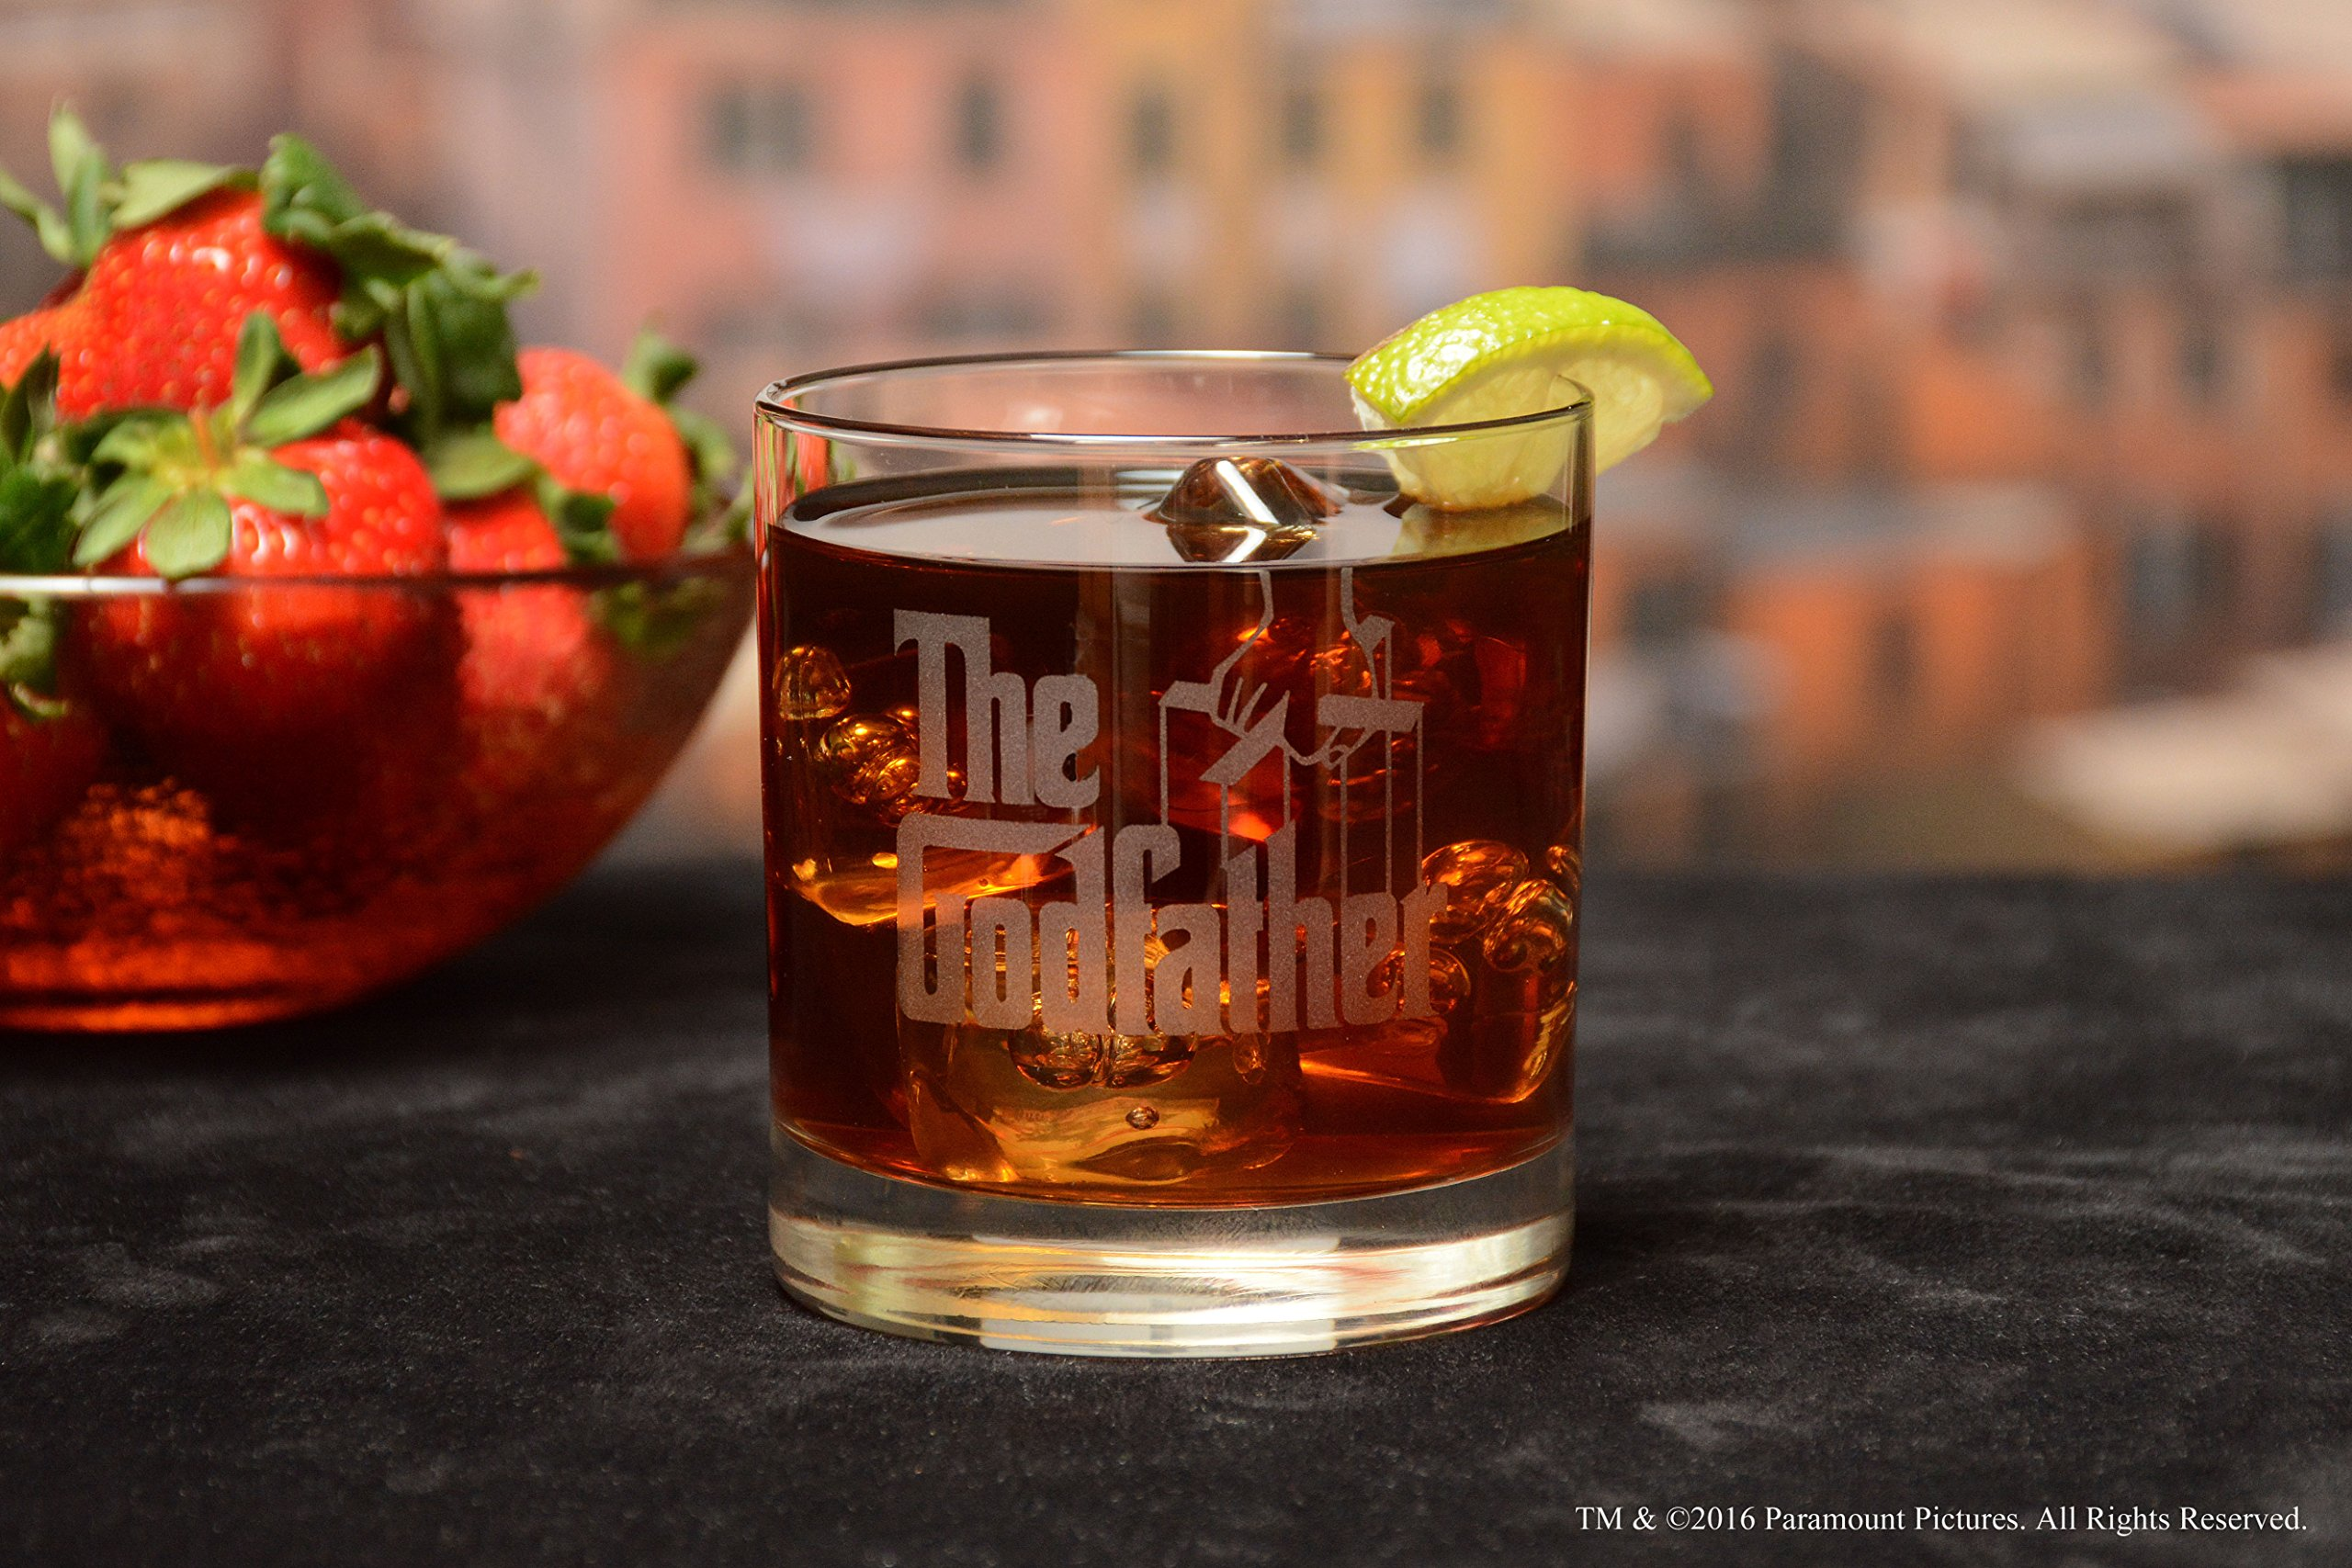 The Godfather Movie Whiskey Glass Godparent Gift Officially Licensed Collectible Premium Etched By Movies On Glass 11…